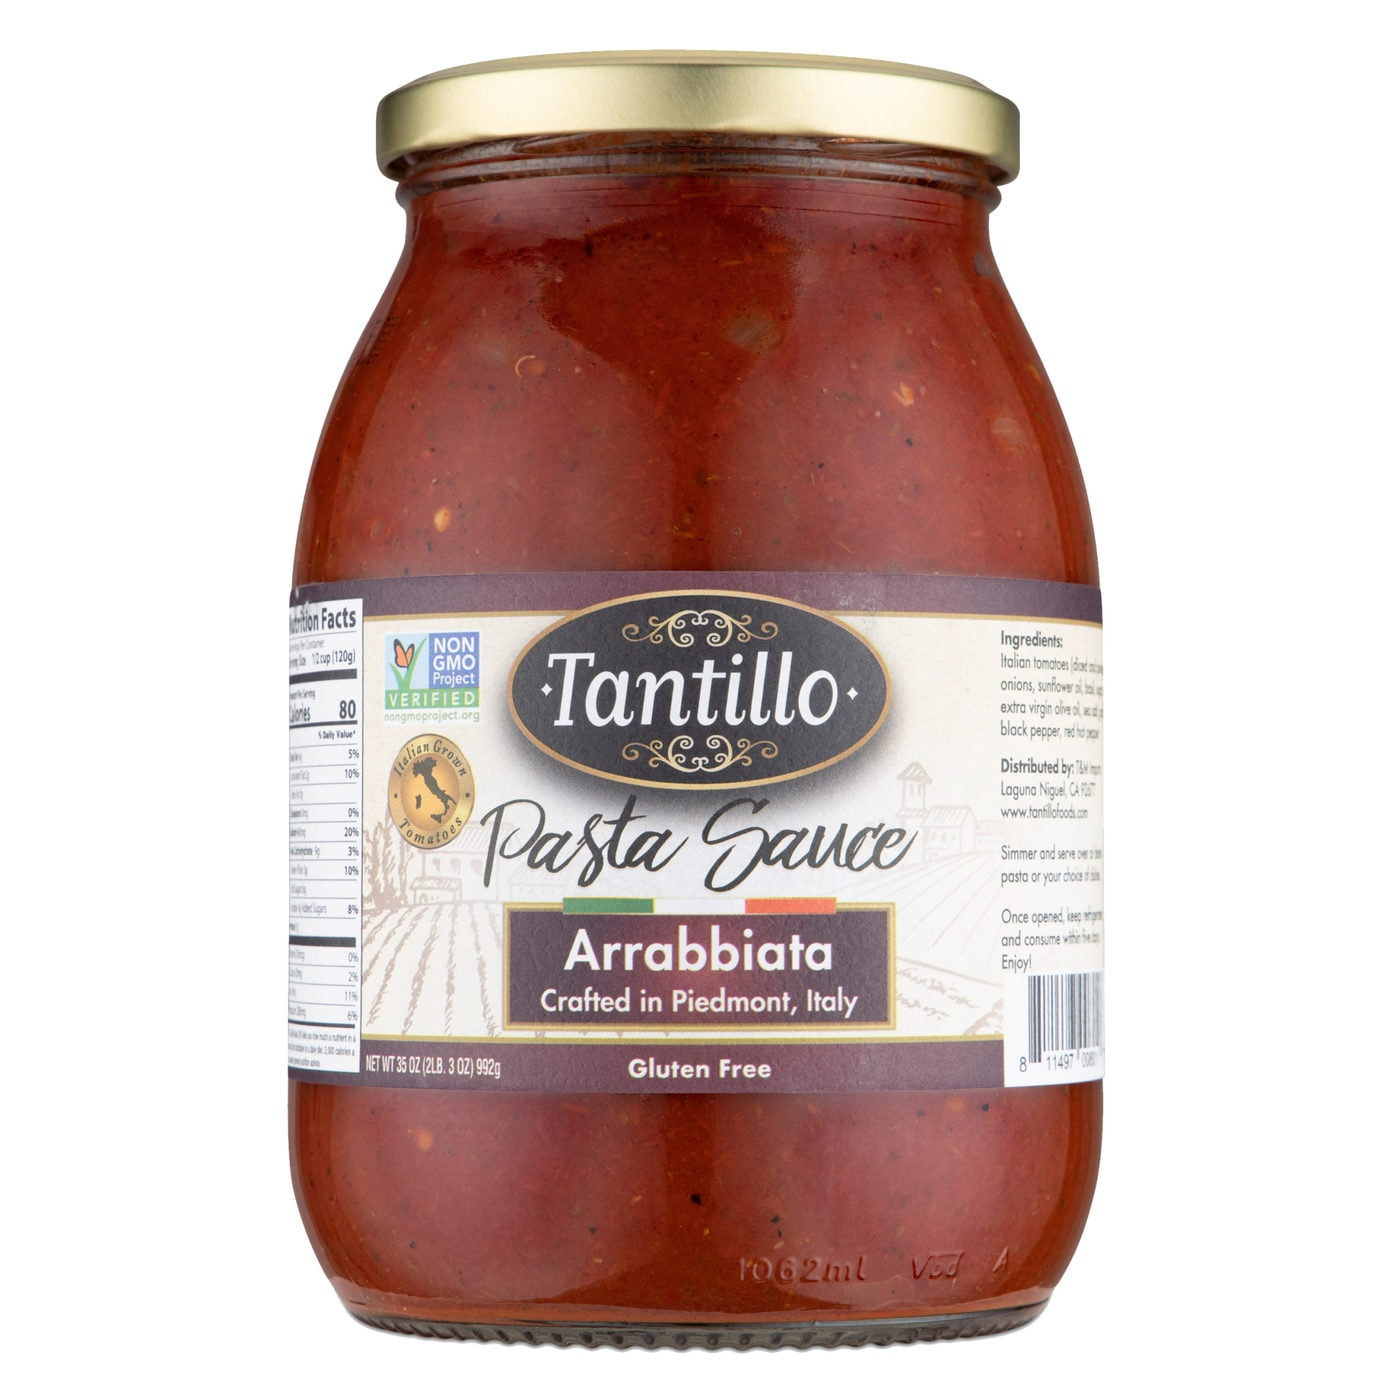 Tantillo Imported Italian Arrabbiata Pasta Sauce 35oz (Pack of 2)